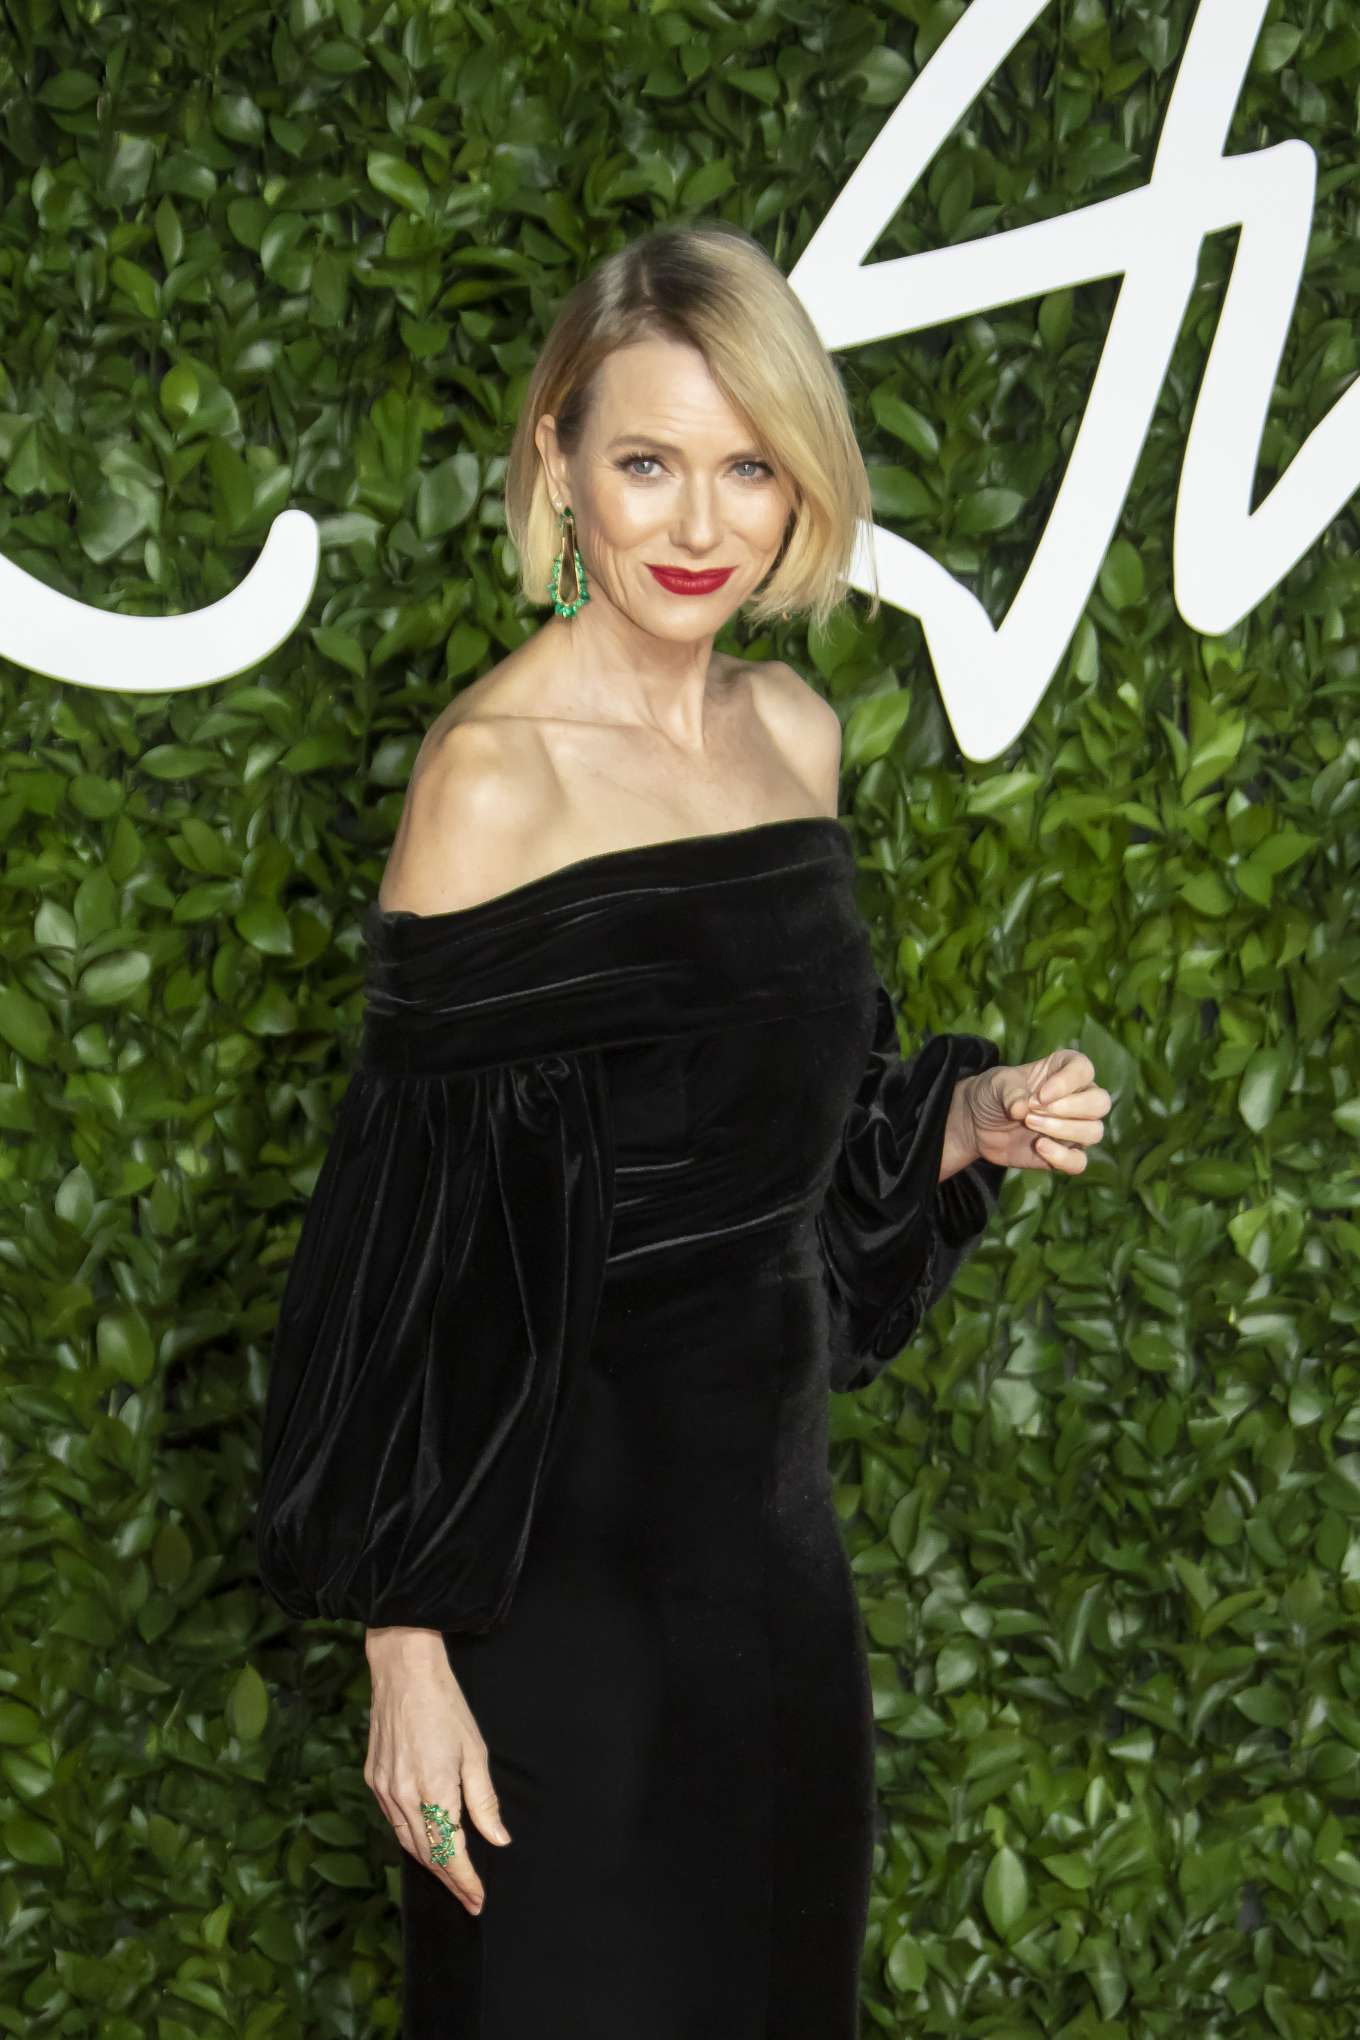 Naomi Watts - Fashion Awards 2019 in London